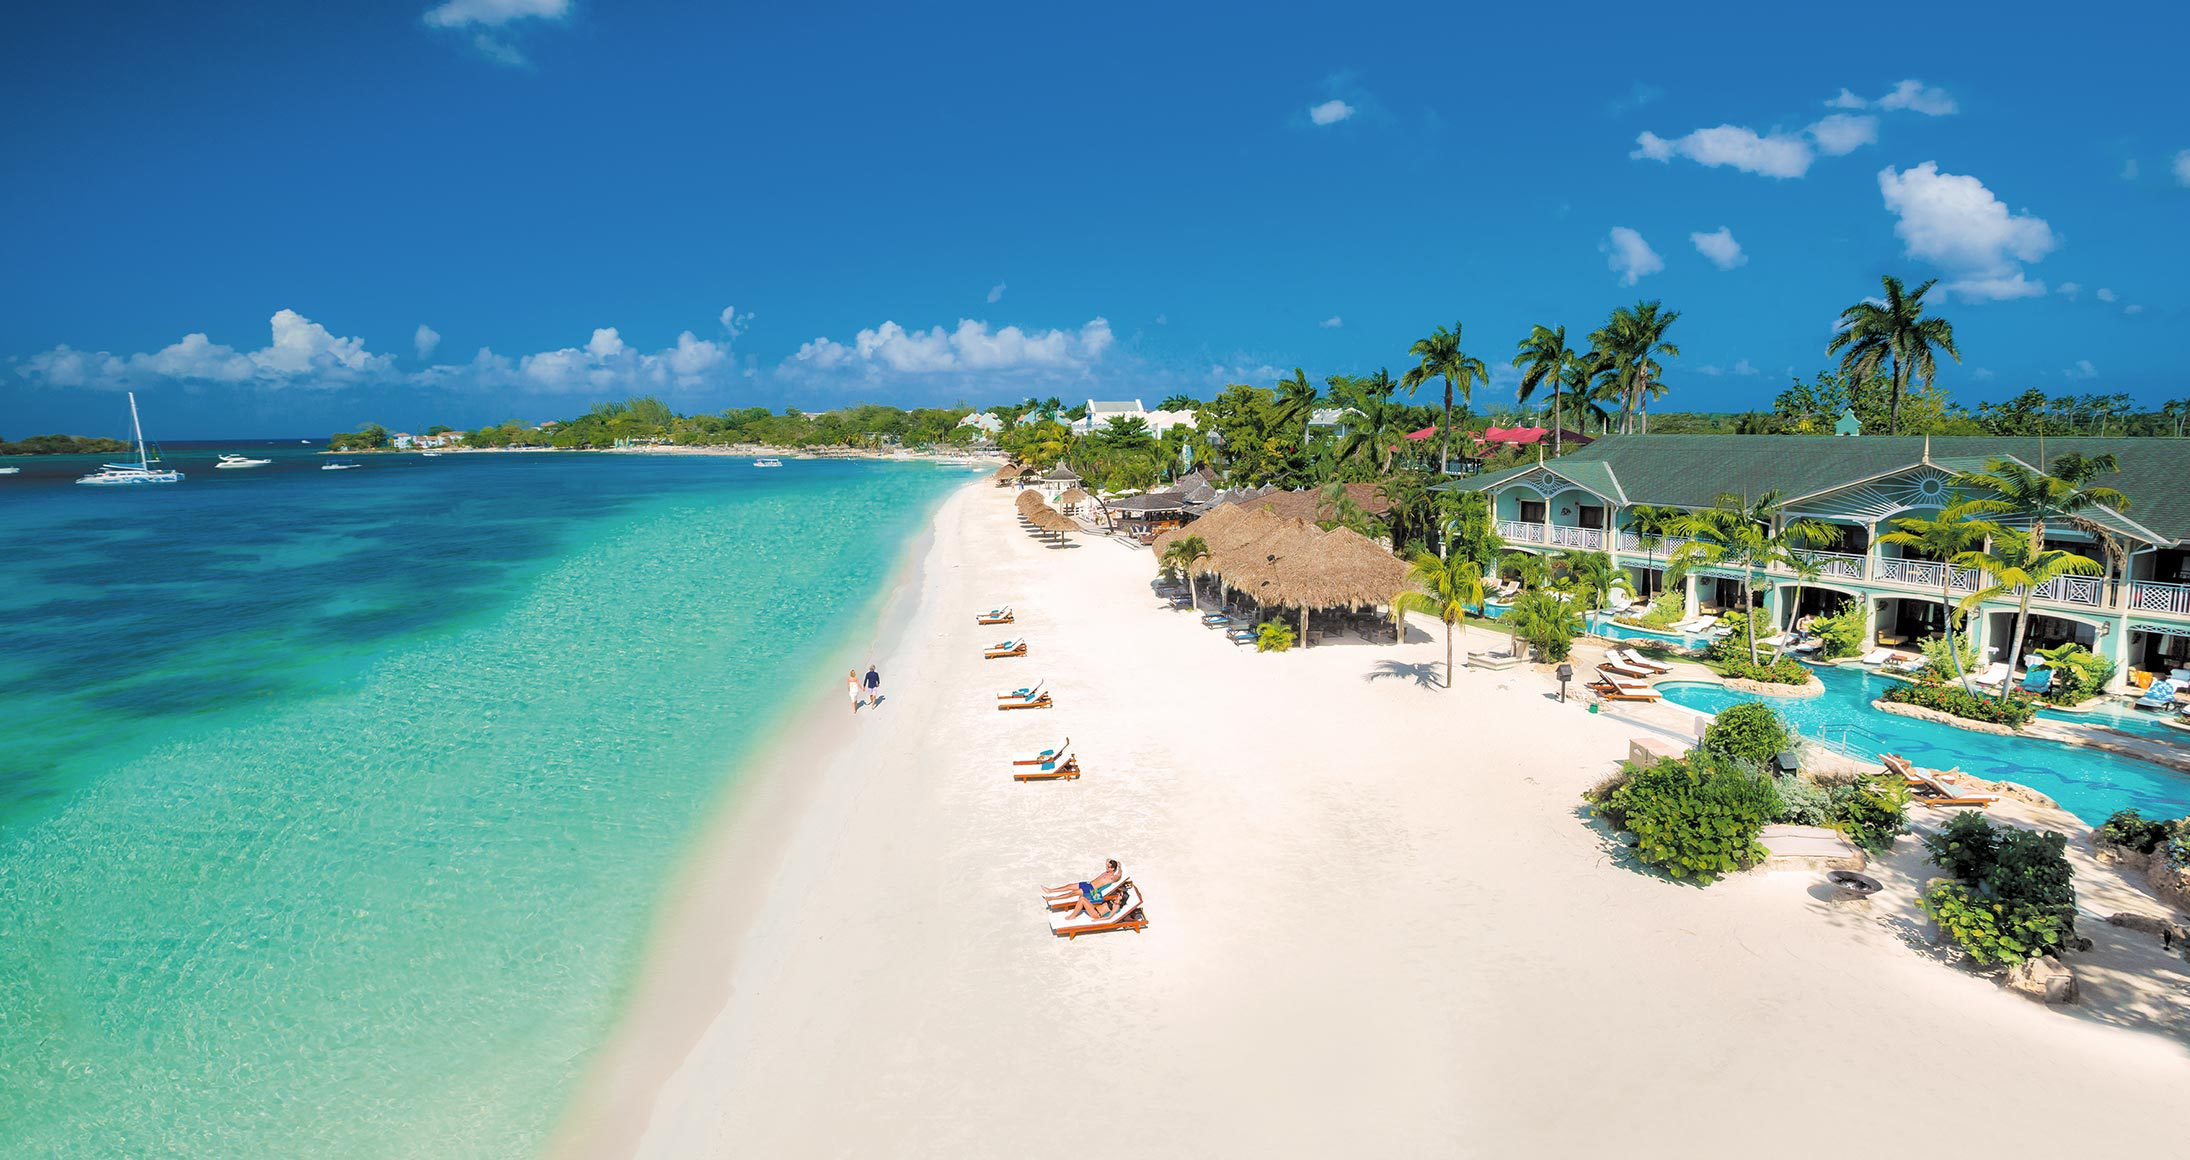 b8592bef1d2c Sandals Negril - All-Inclusive Resort on Seven-Mile Beach